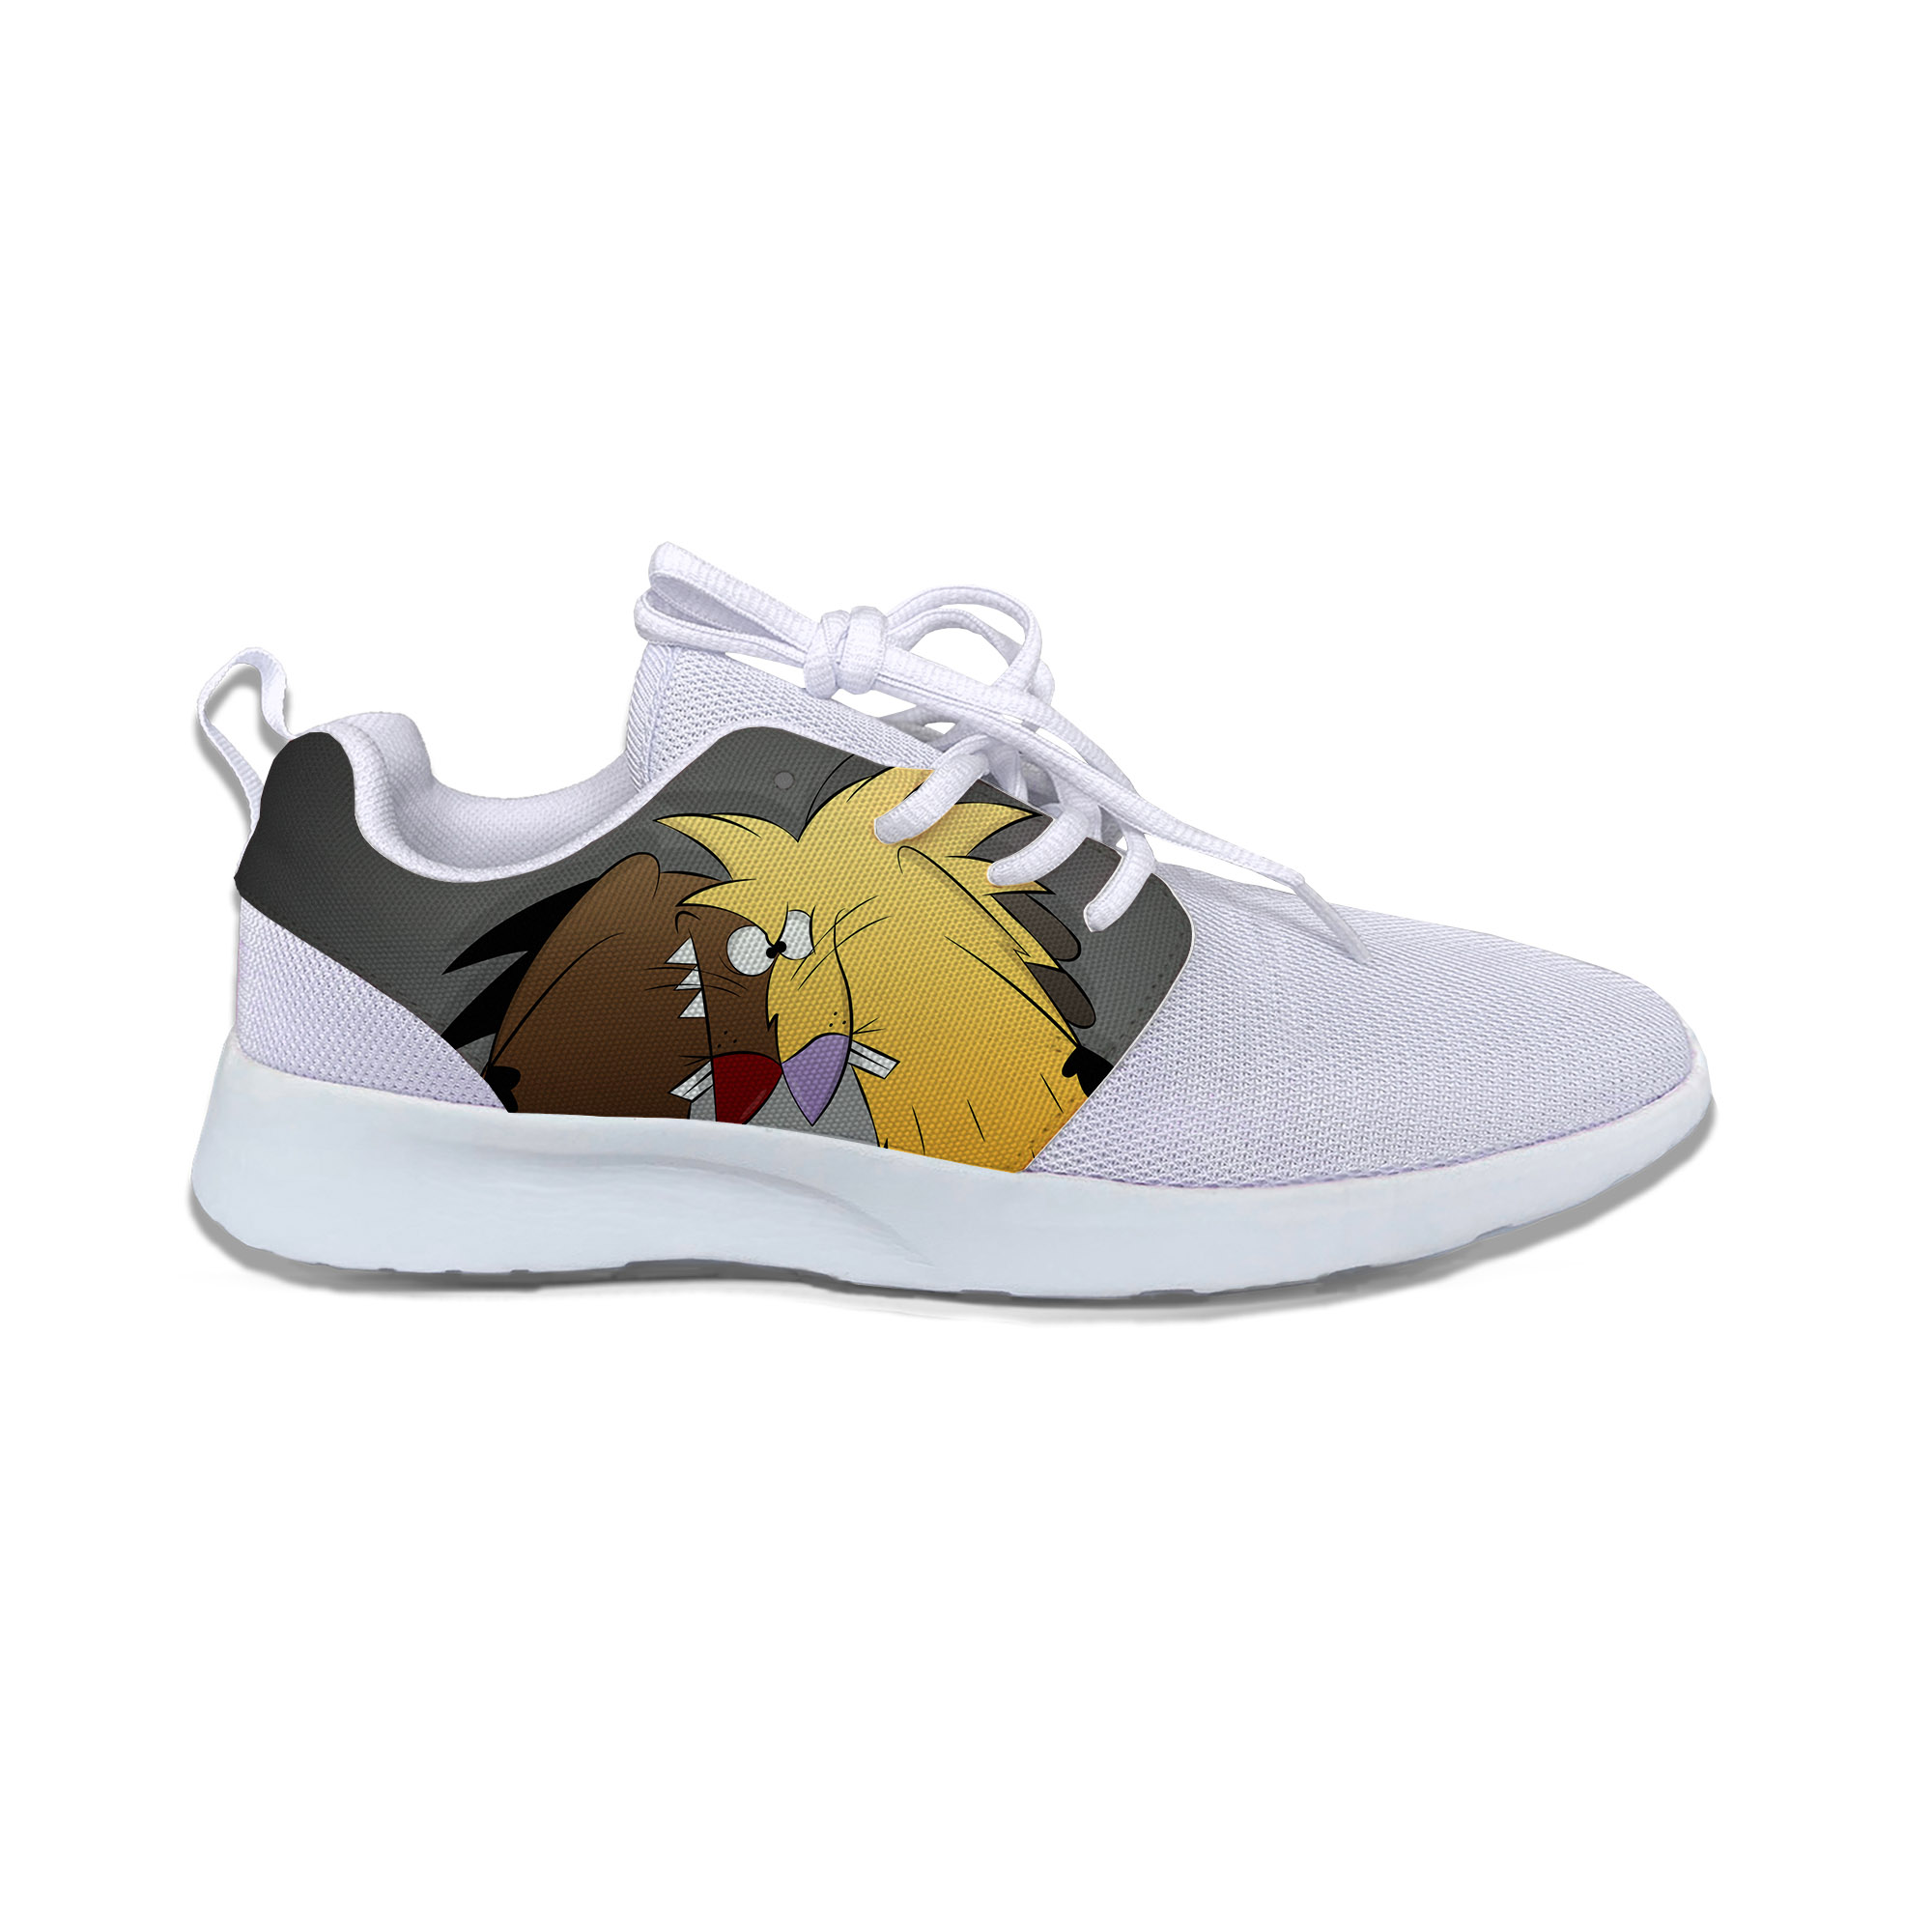 Hot The Angry Beavers Shoes Lightweight Man/Woman Classic Running Shoes Breathable Fashion Sports Shoes Comfortable Sneakers